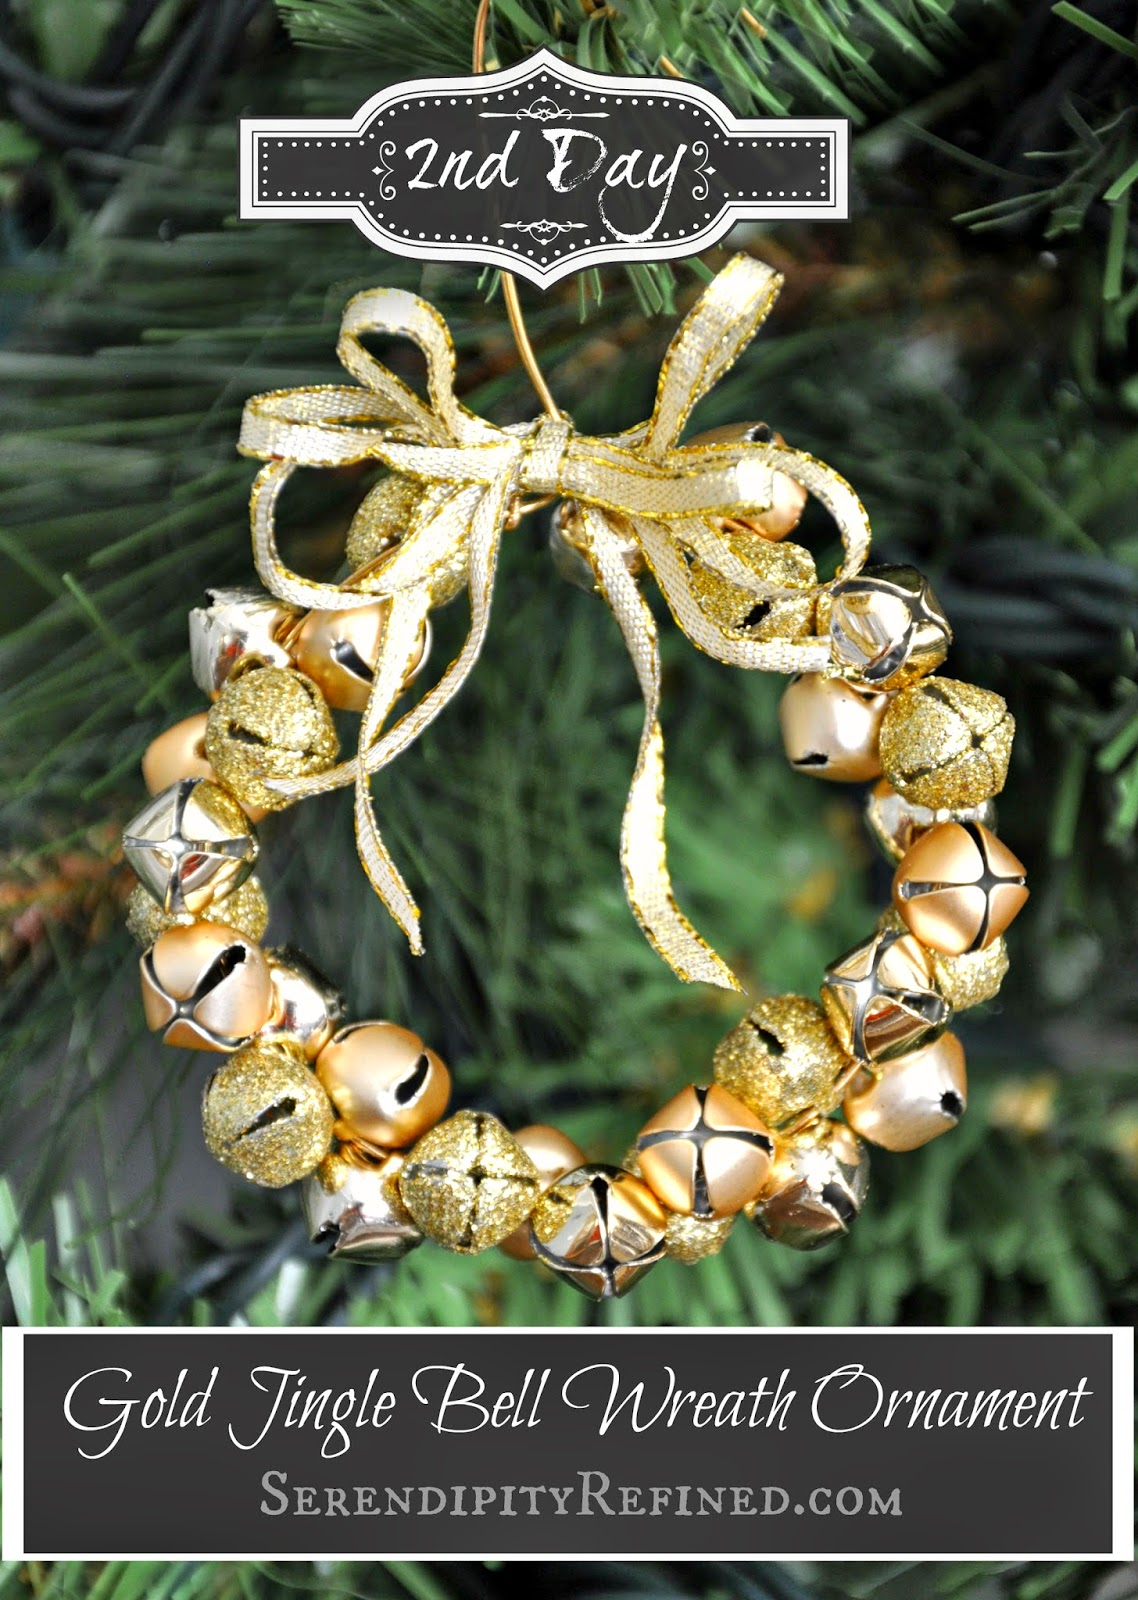 Making christmas decorations jingle bells - Easy Gold Jingle Bell Wreath Ornament Day 2 Pin It Today S Gold Jingle Bell Wreath Ornament